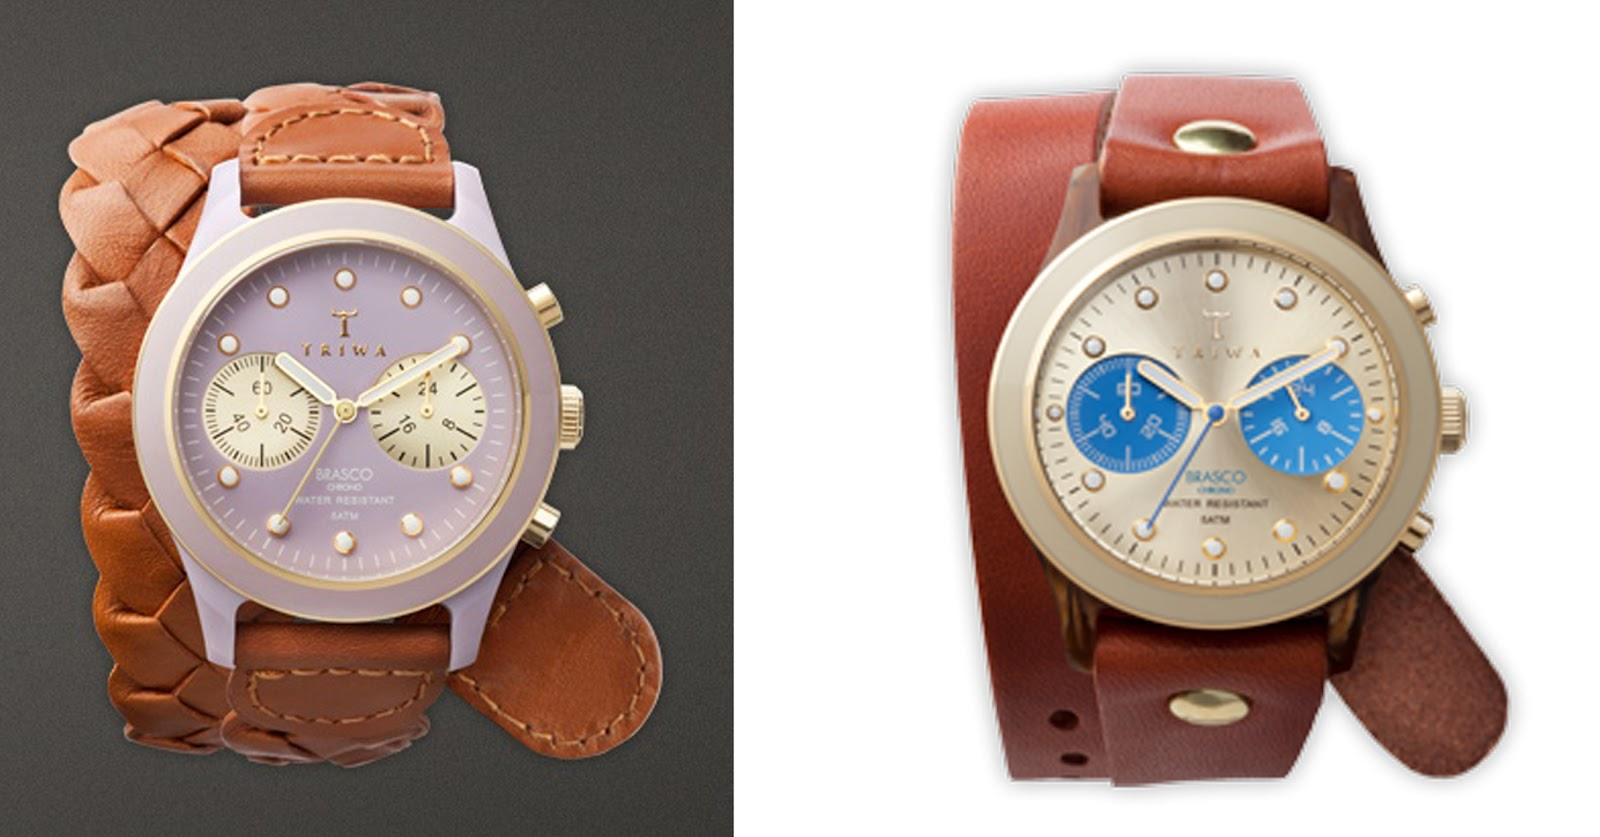 Nordiska Style: TRIWA: Cool, classic watches from Sweden